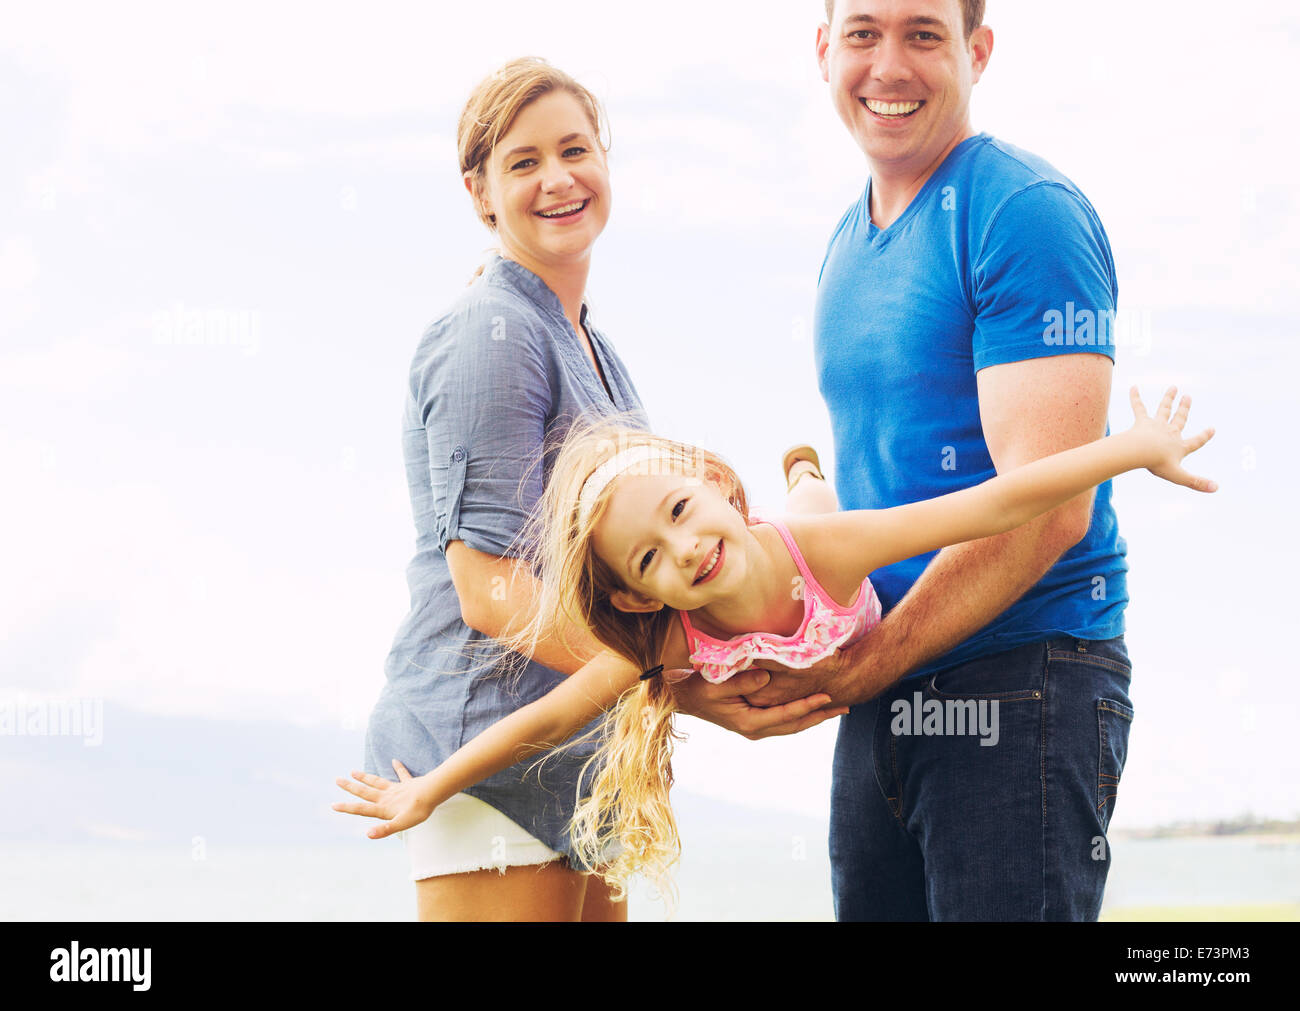 Happy Family Outside Playing Airplane with Young Daughter - Stock Image